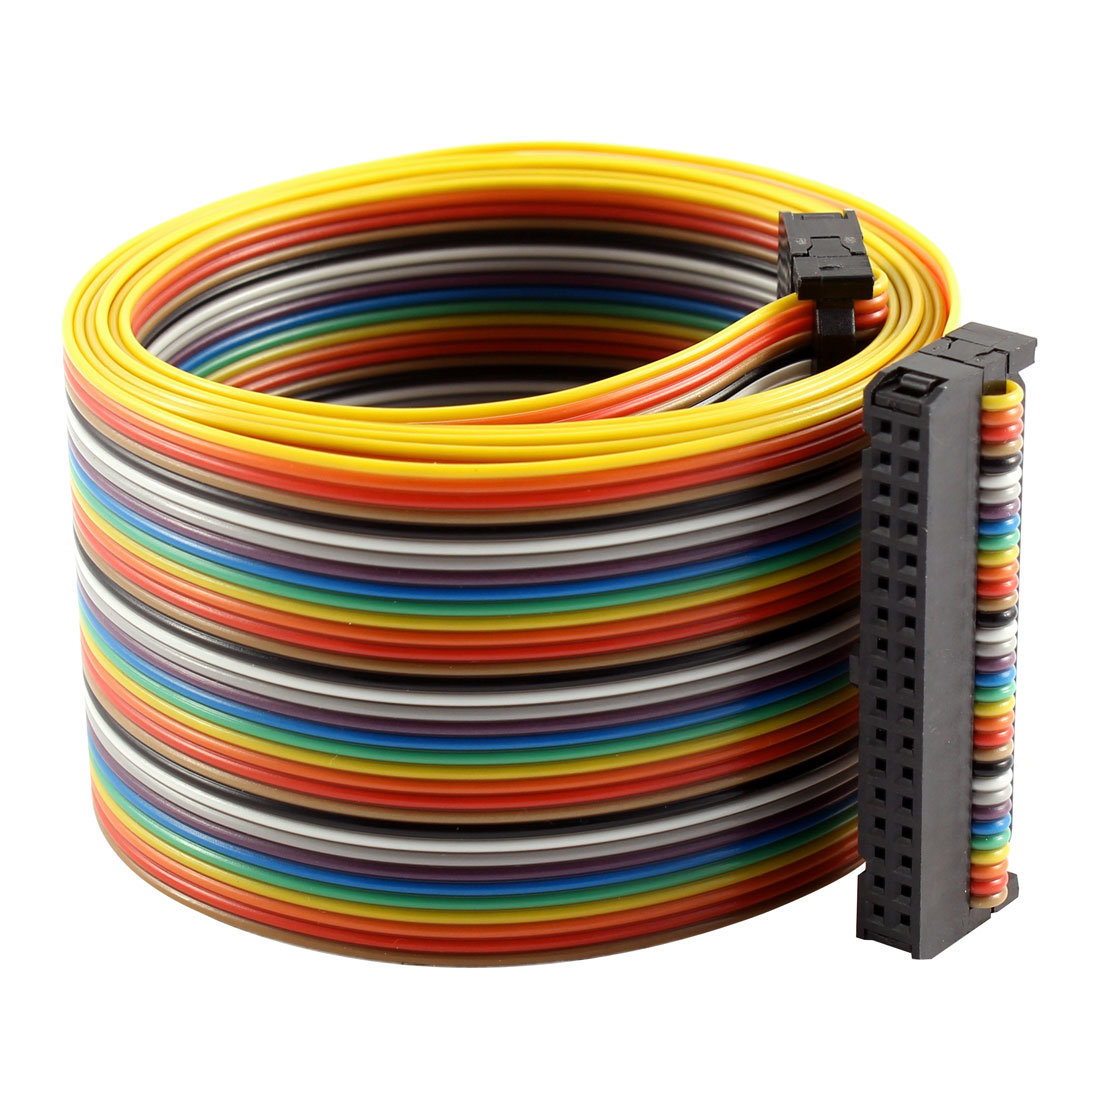 2.54mm Pitch 34 Pin 34 Way F/F Connector IDC Flat Rainbow Ribbon Cable 118cm